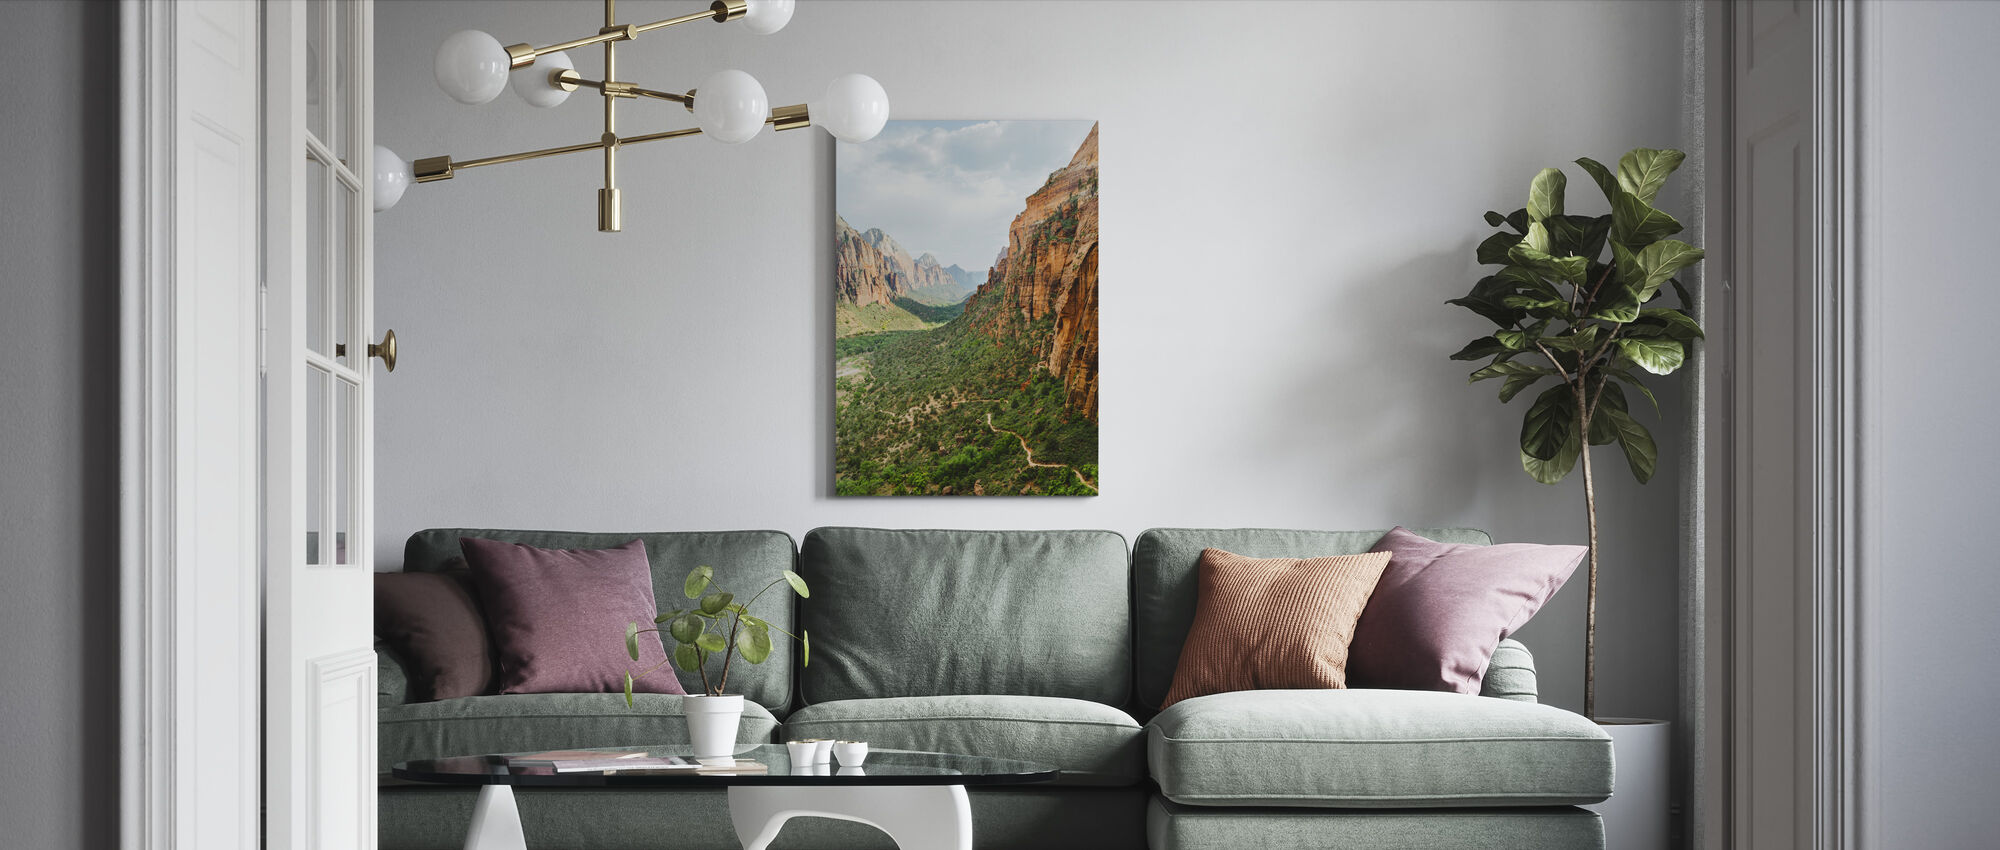 Valley in Zion National Park, USA - Canvas print - Living Room